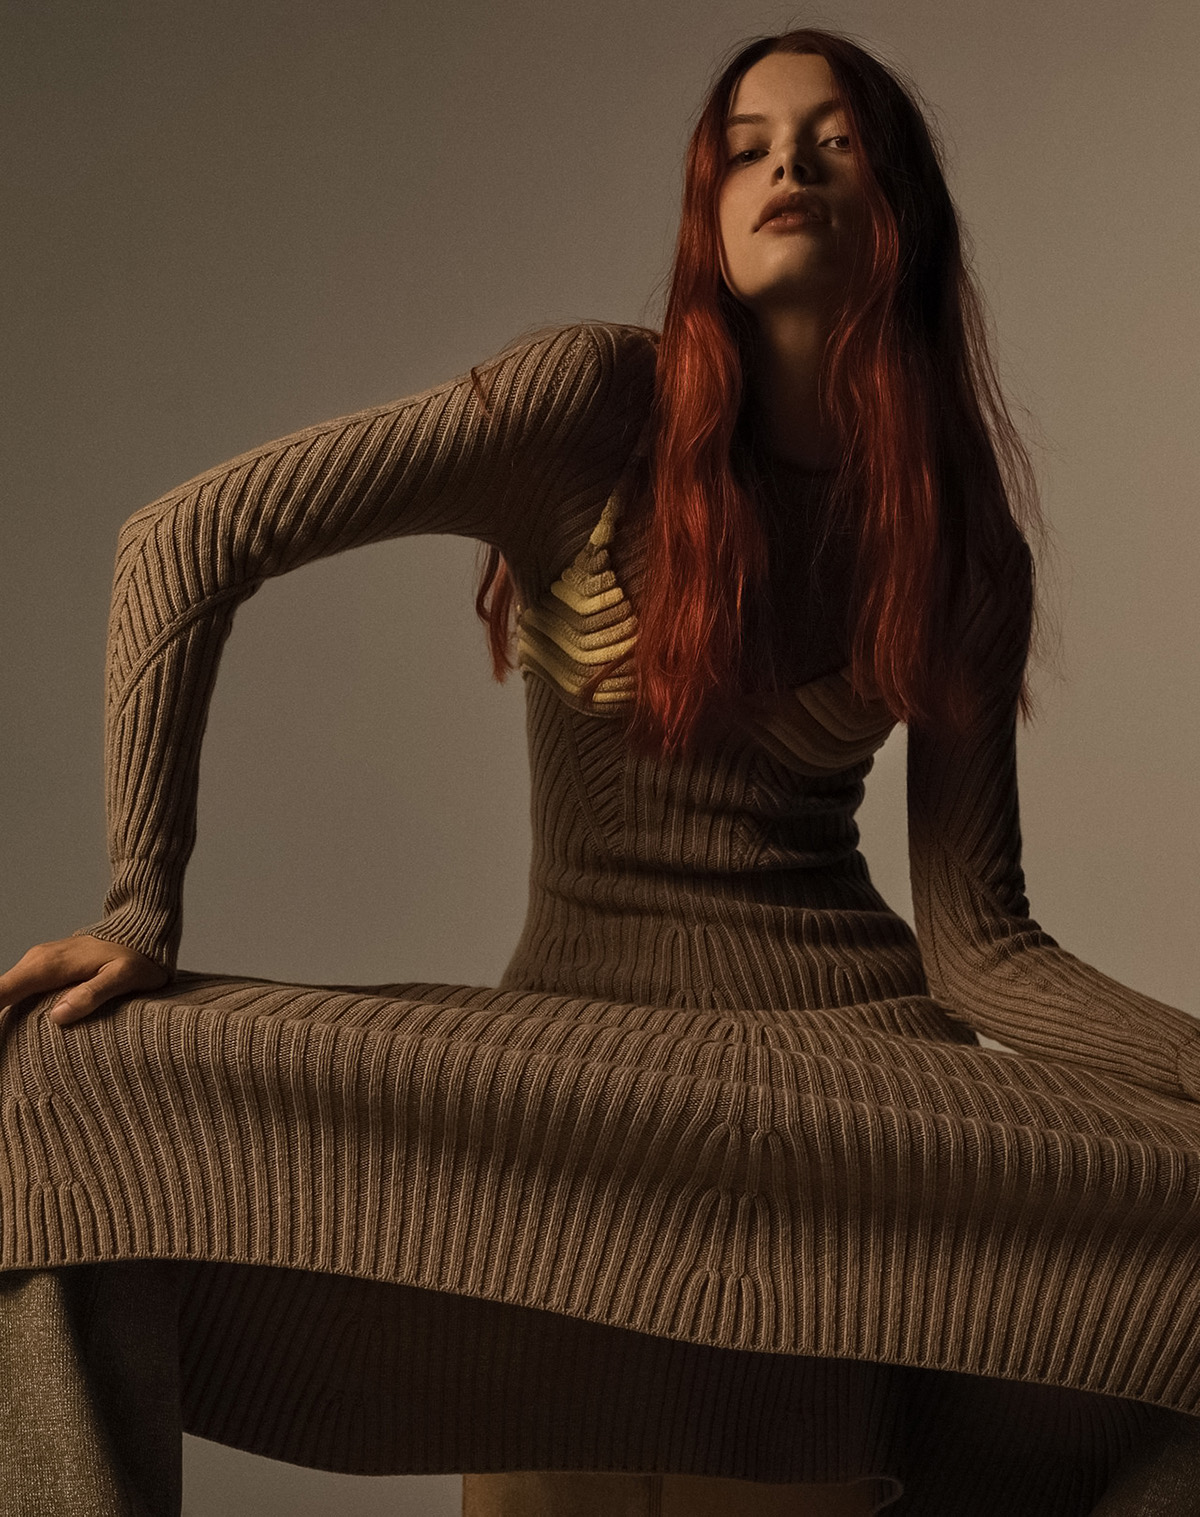 ''Knits & Pieces'' by Josh Olins for WSJ. Magazine Fall 2021